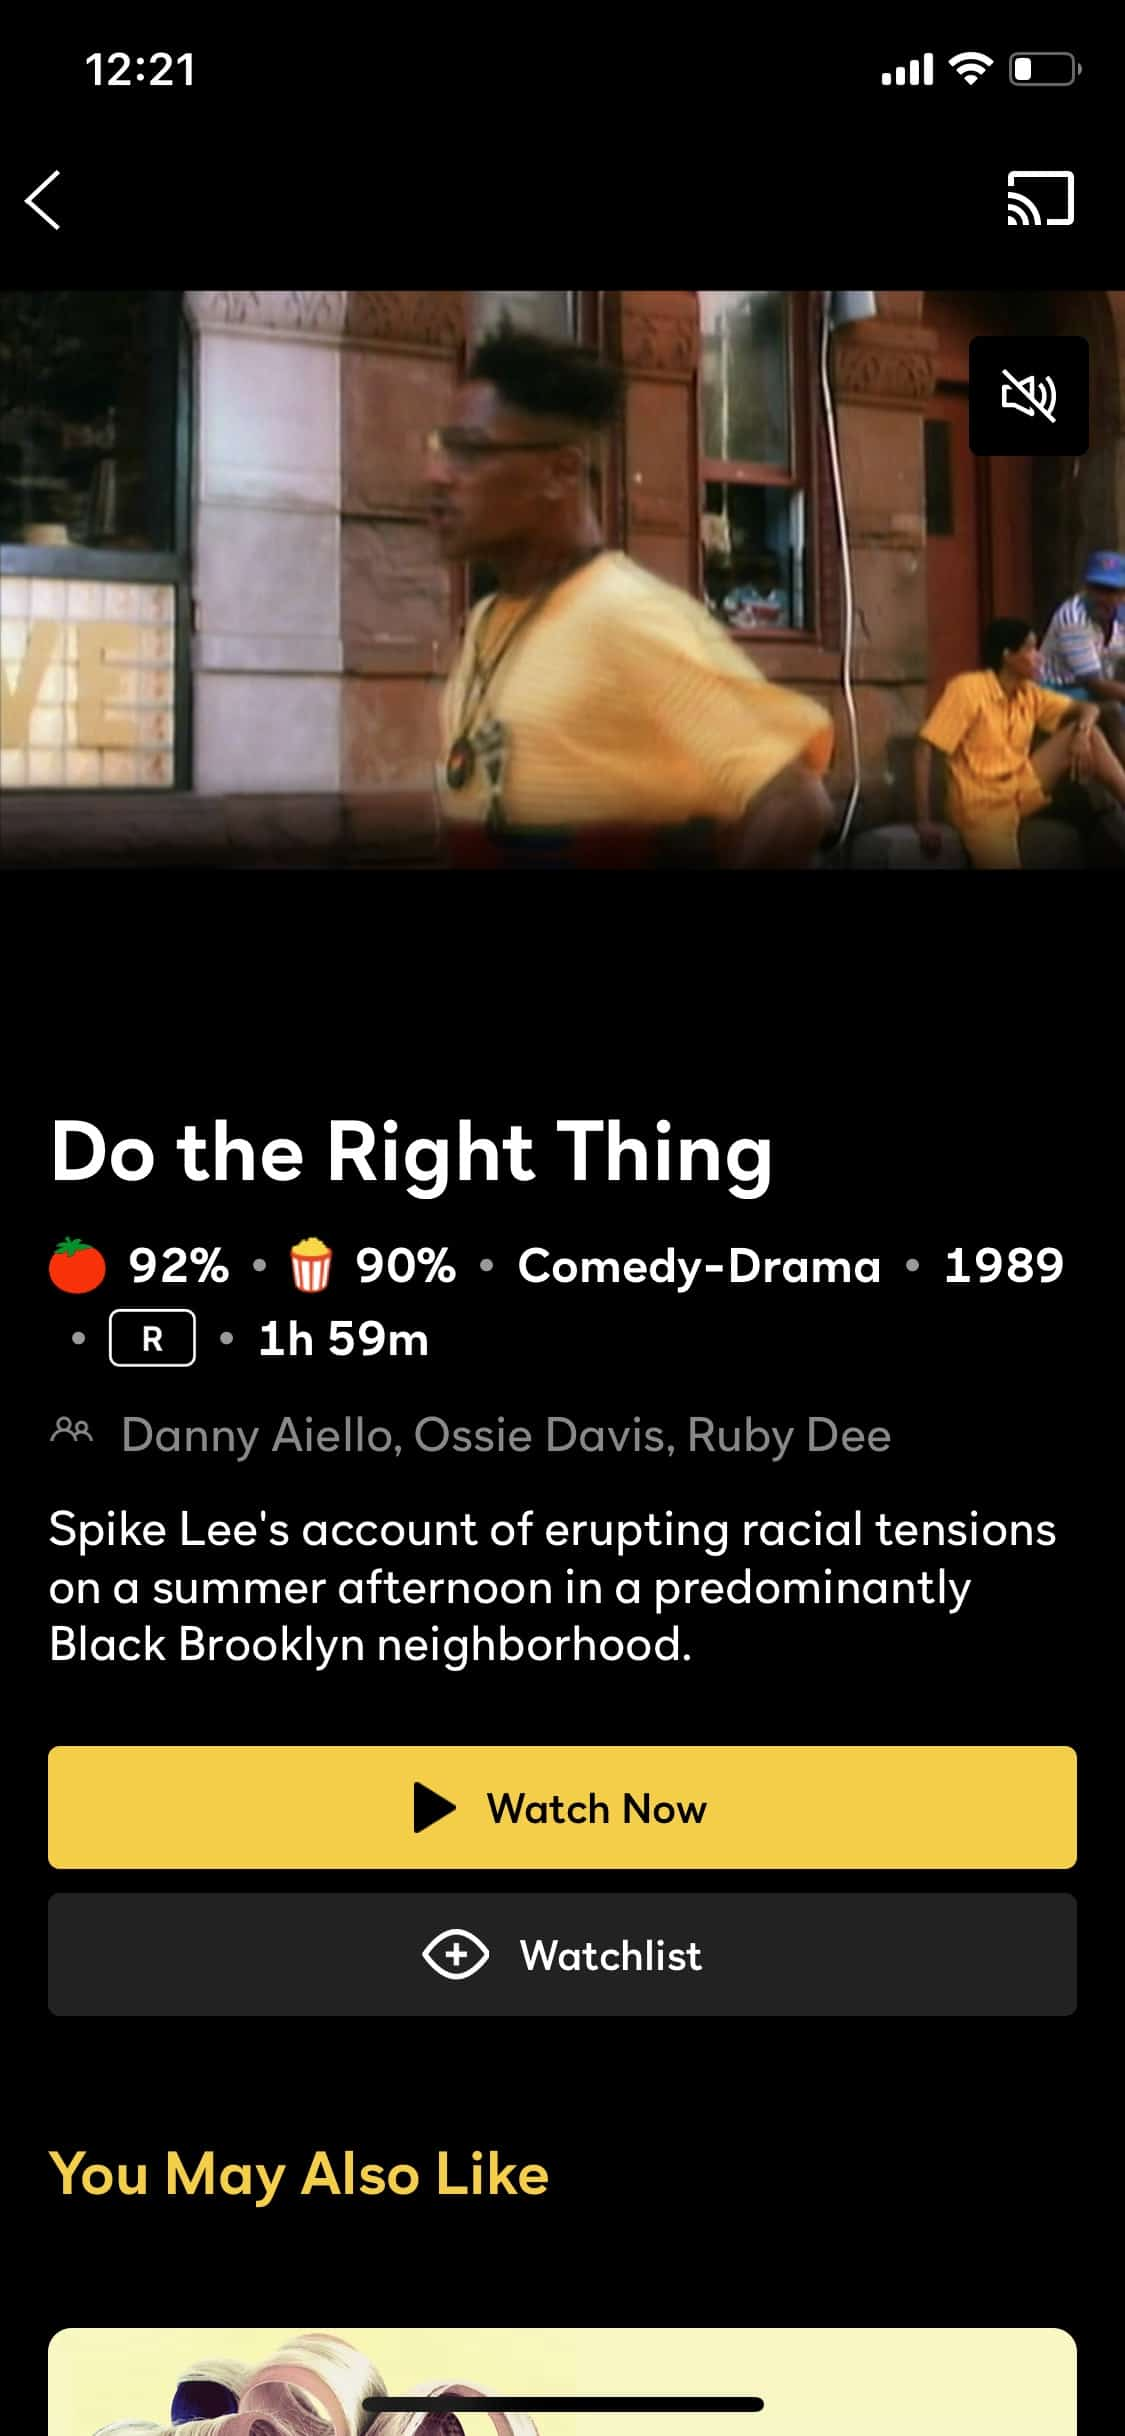 Peacock offers movies like Do the Right Thing (1989)